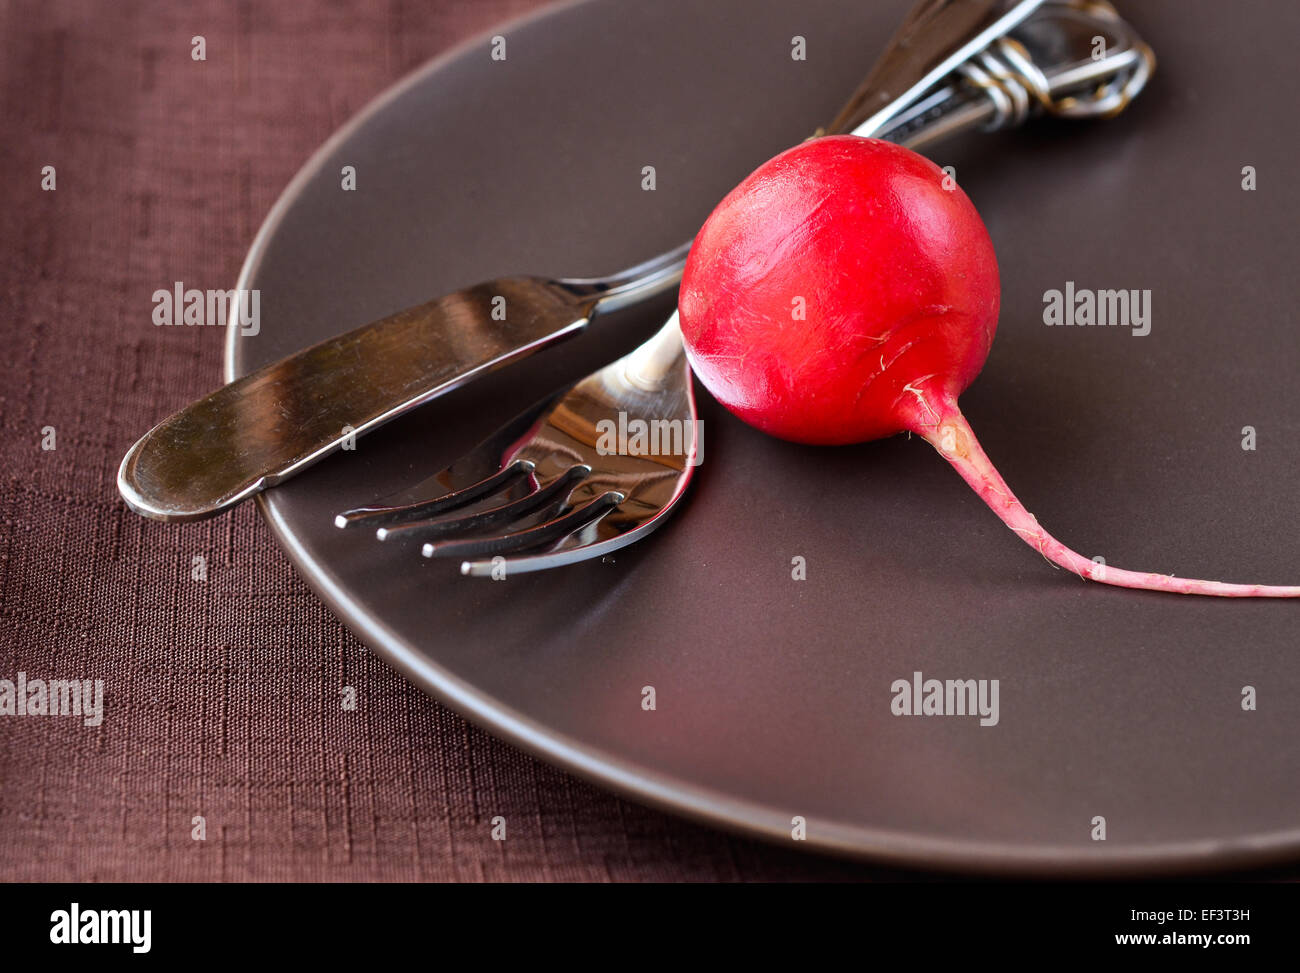 Single radish and silverware on a plate - Stock Image